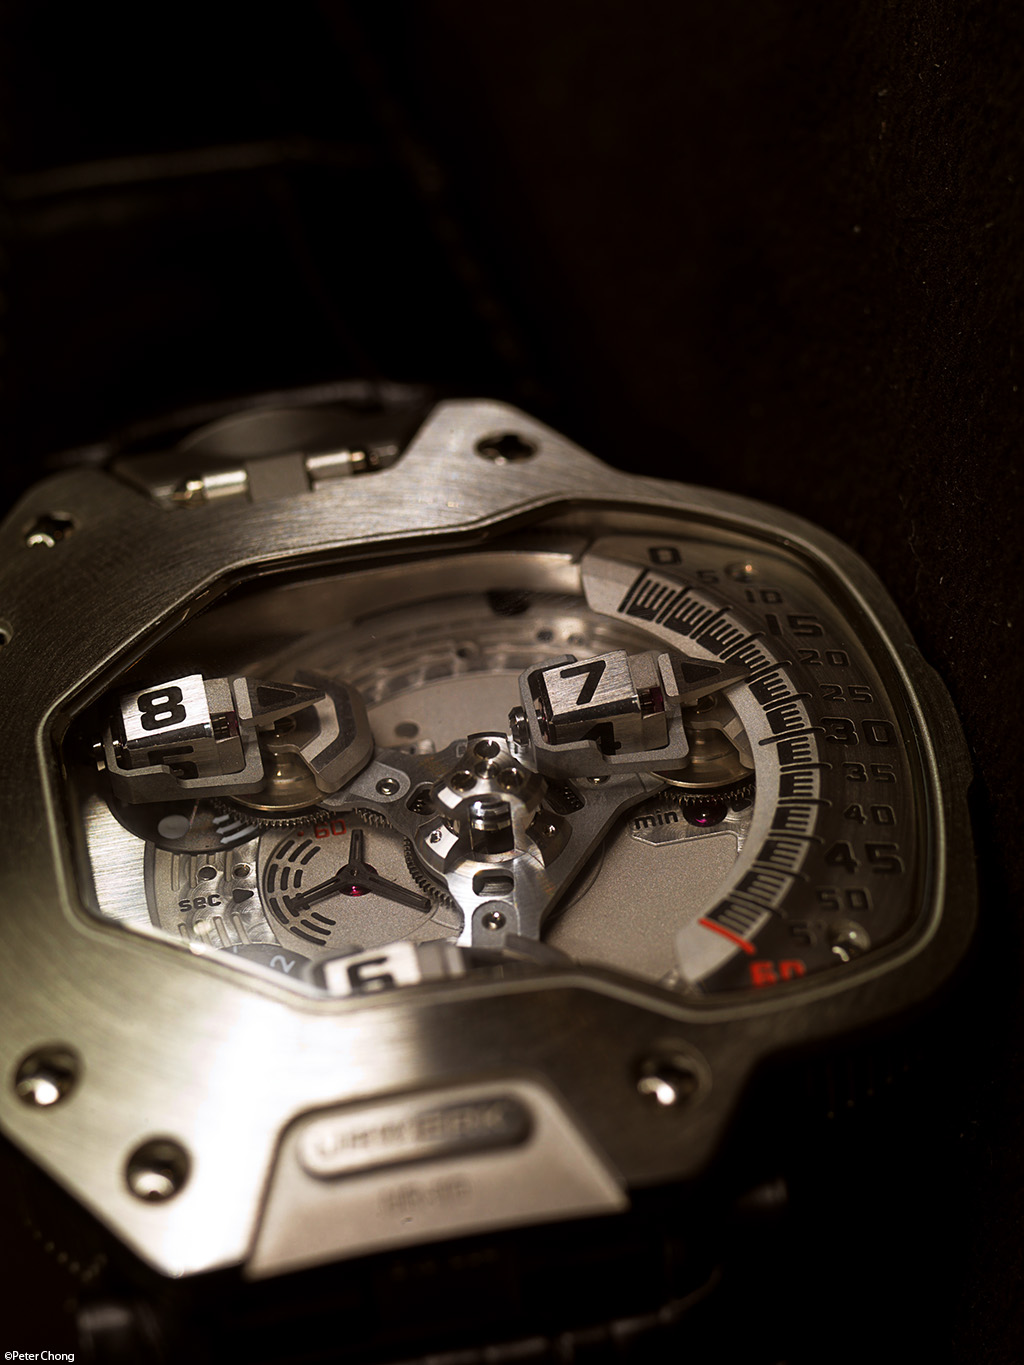 Urwerk UR110 dial side, showing the satelites as seen on an oblique